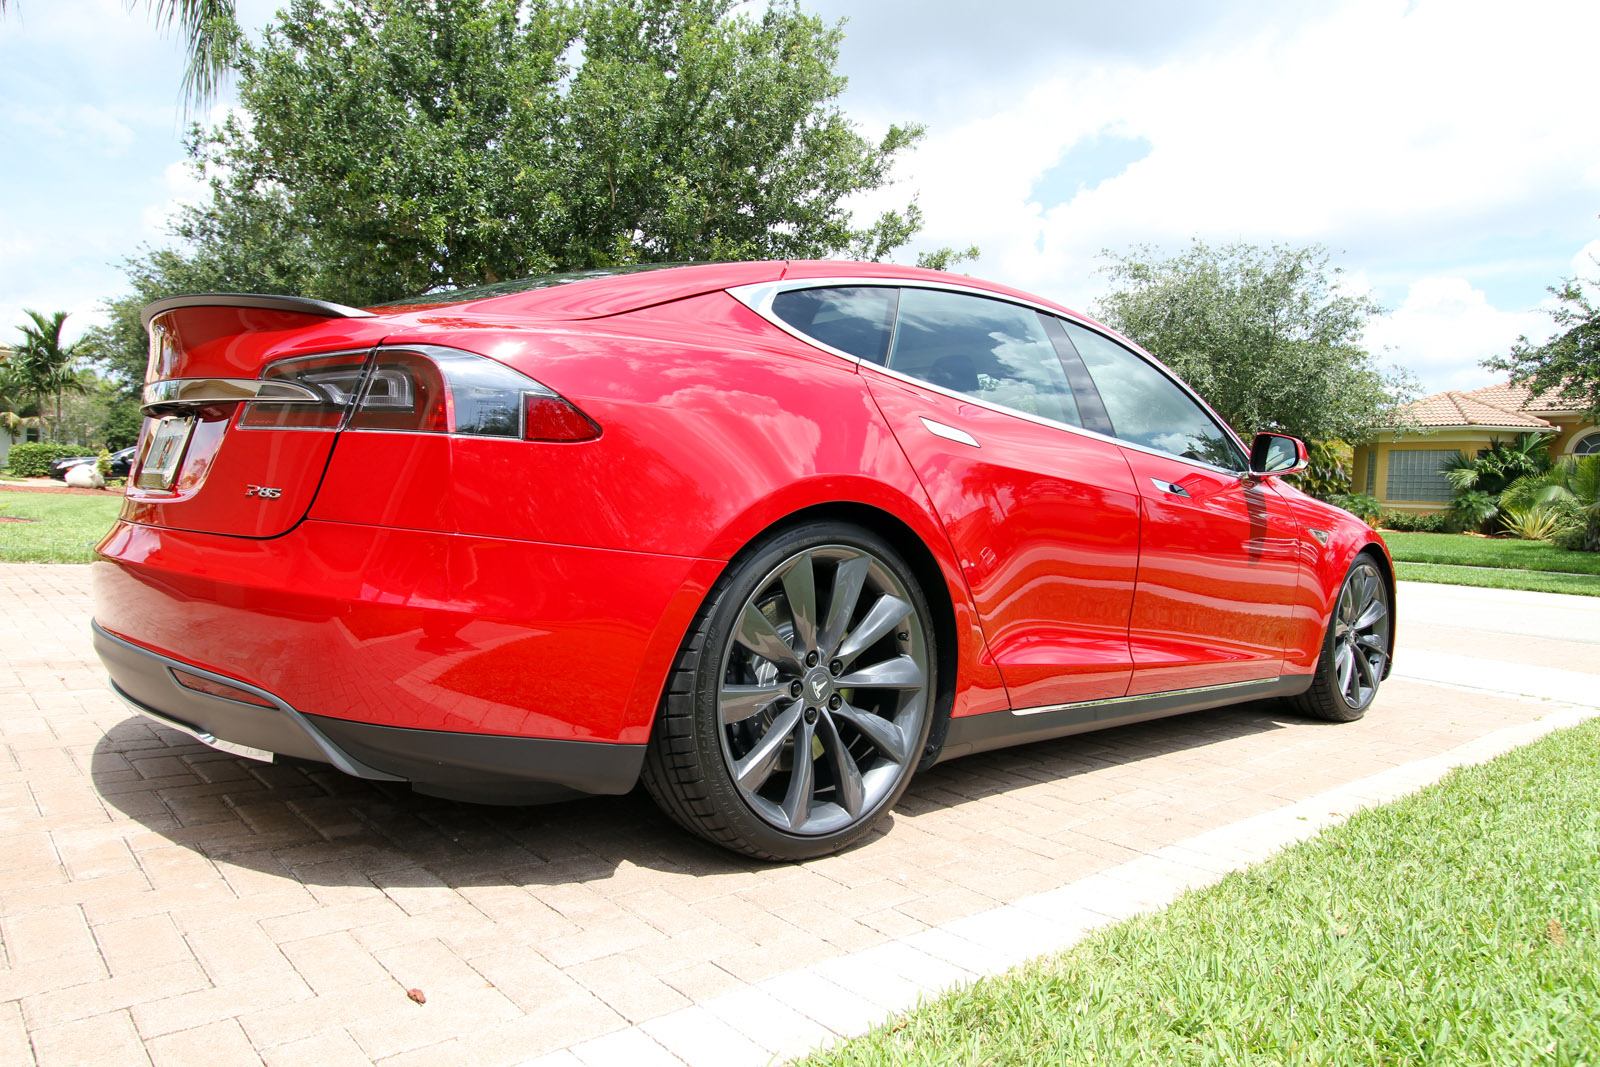 2013-tesla-model-s-p85-multi-coat-red-009.jpg